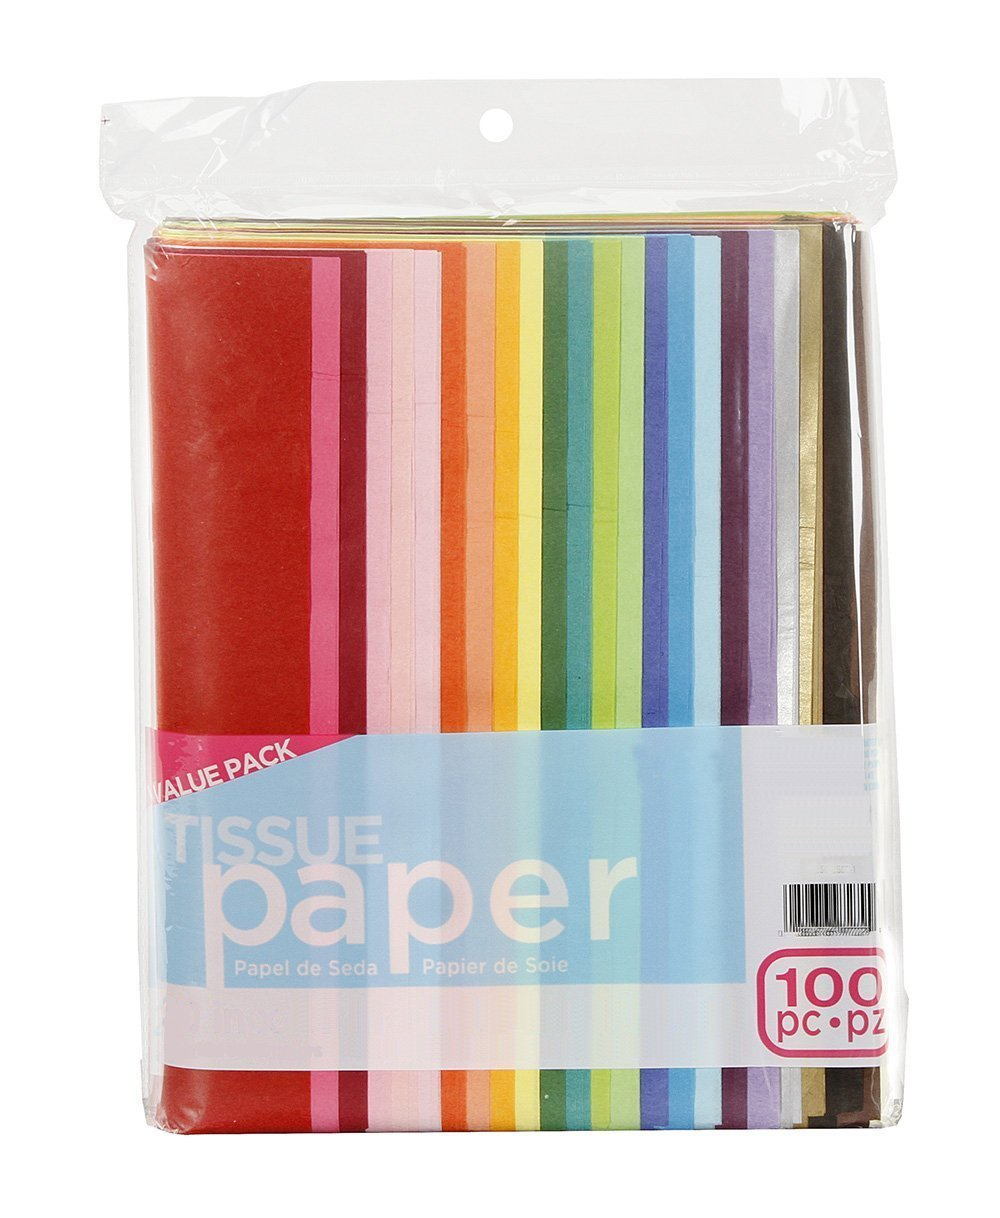 "ArtVerse 100-Piece Tissue Paper, 20"" x 26"", Assorted Colors (Pack of 2)"